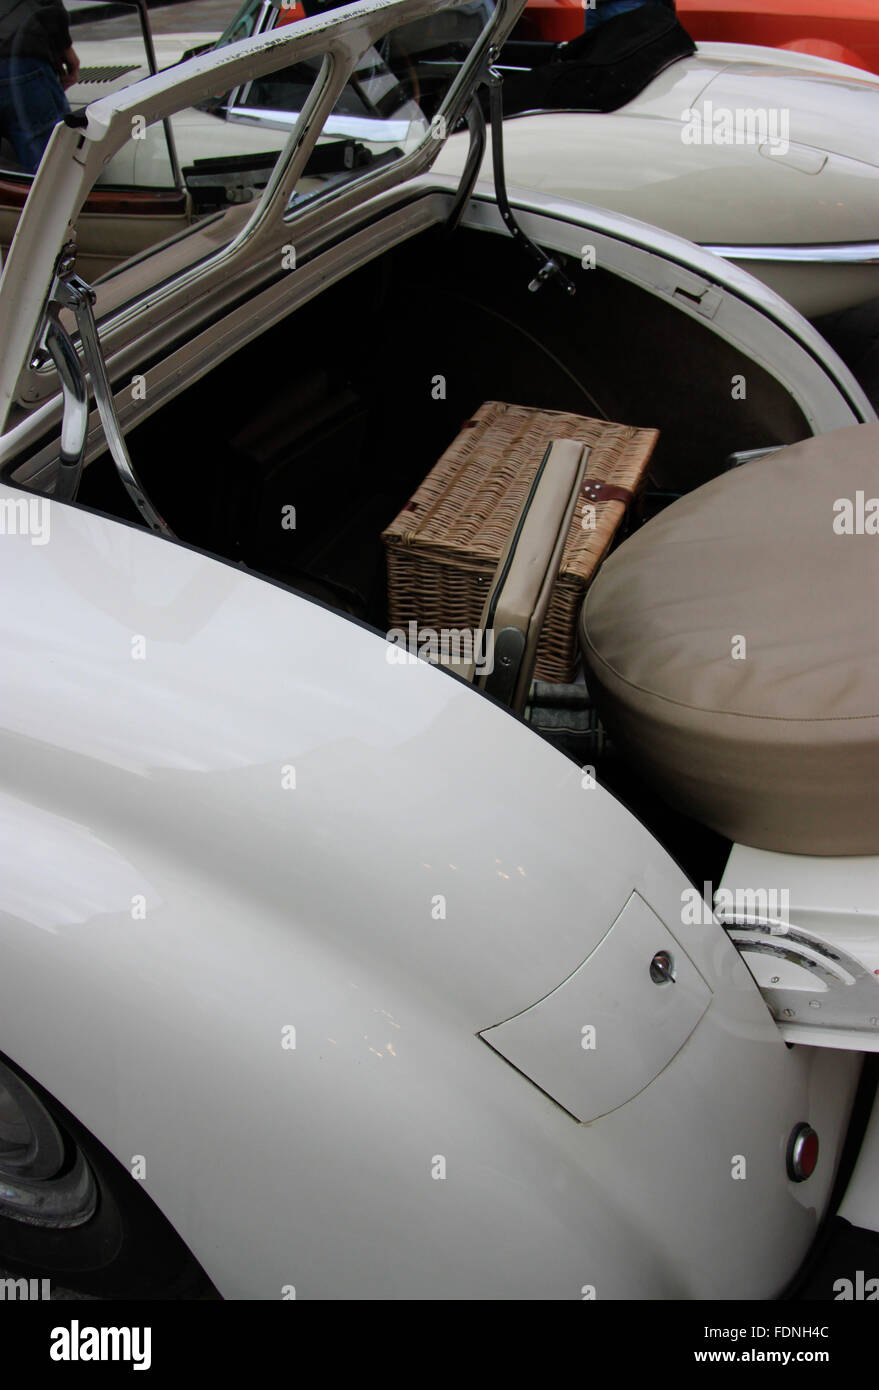 Dicky/dickie seat for child in back of 1930s classic car folding windscreen picnic hamper - Stock Image